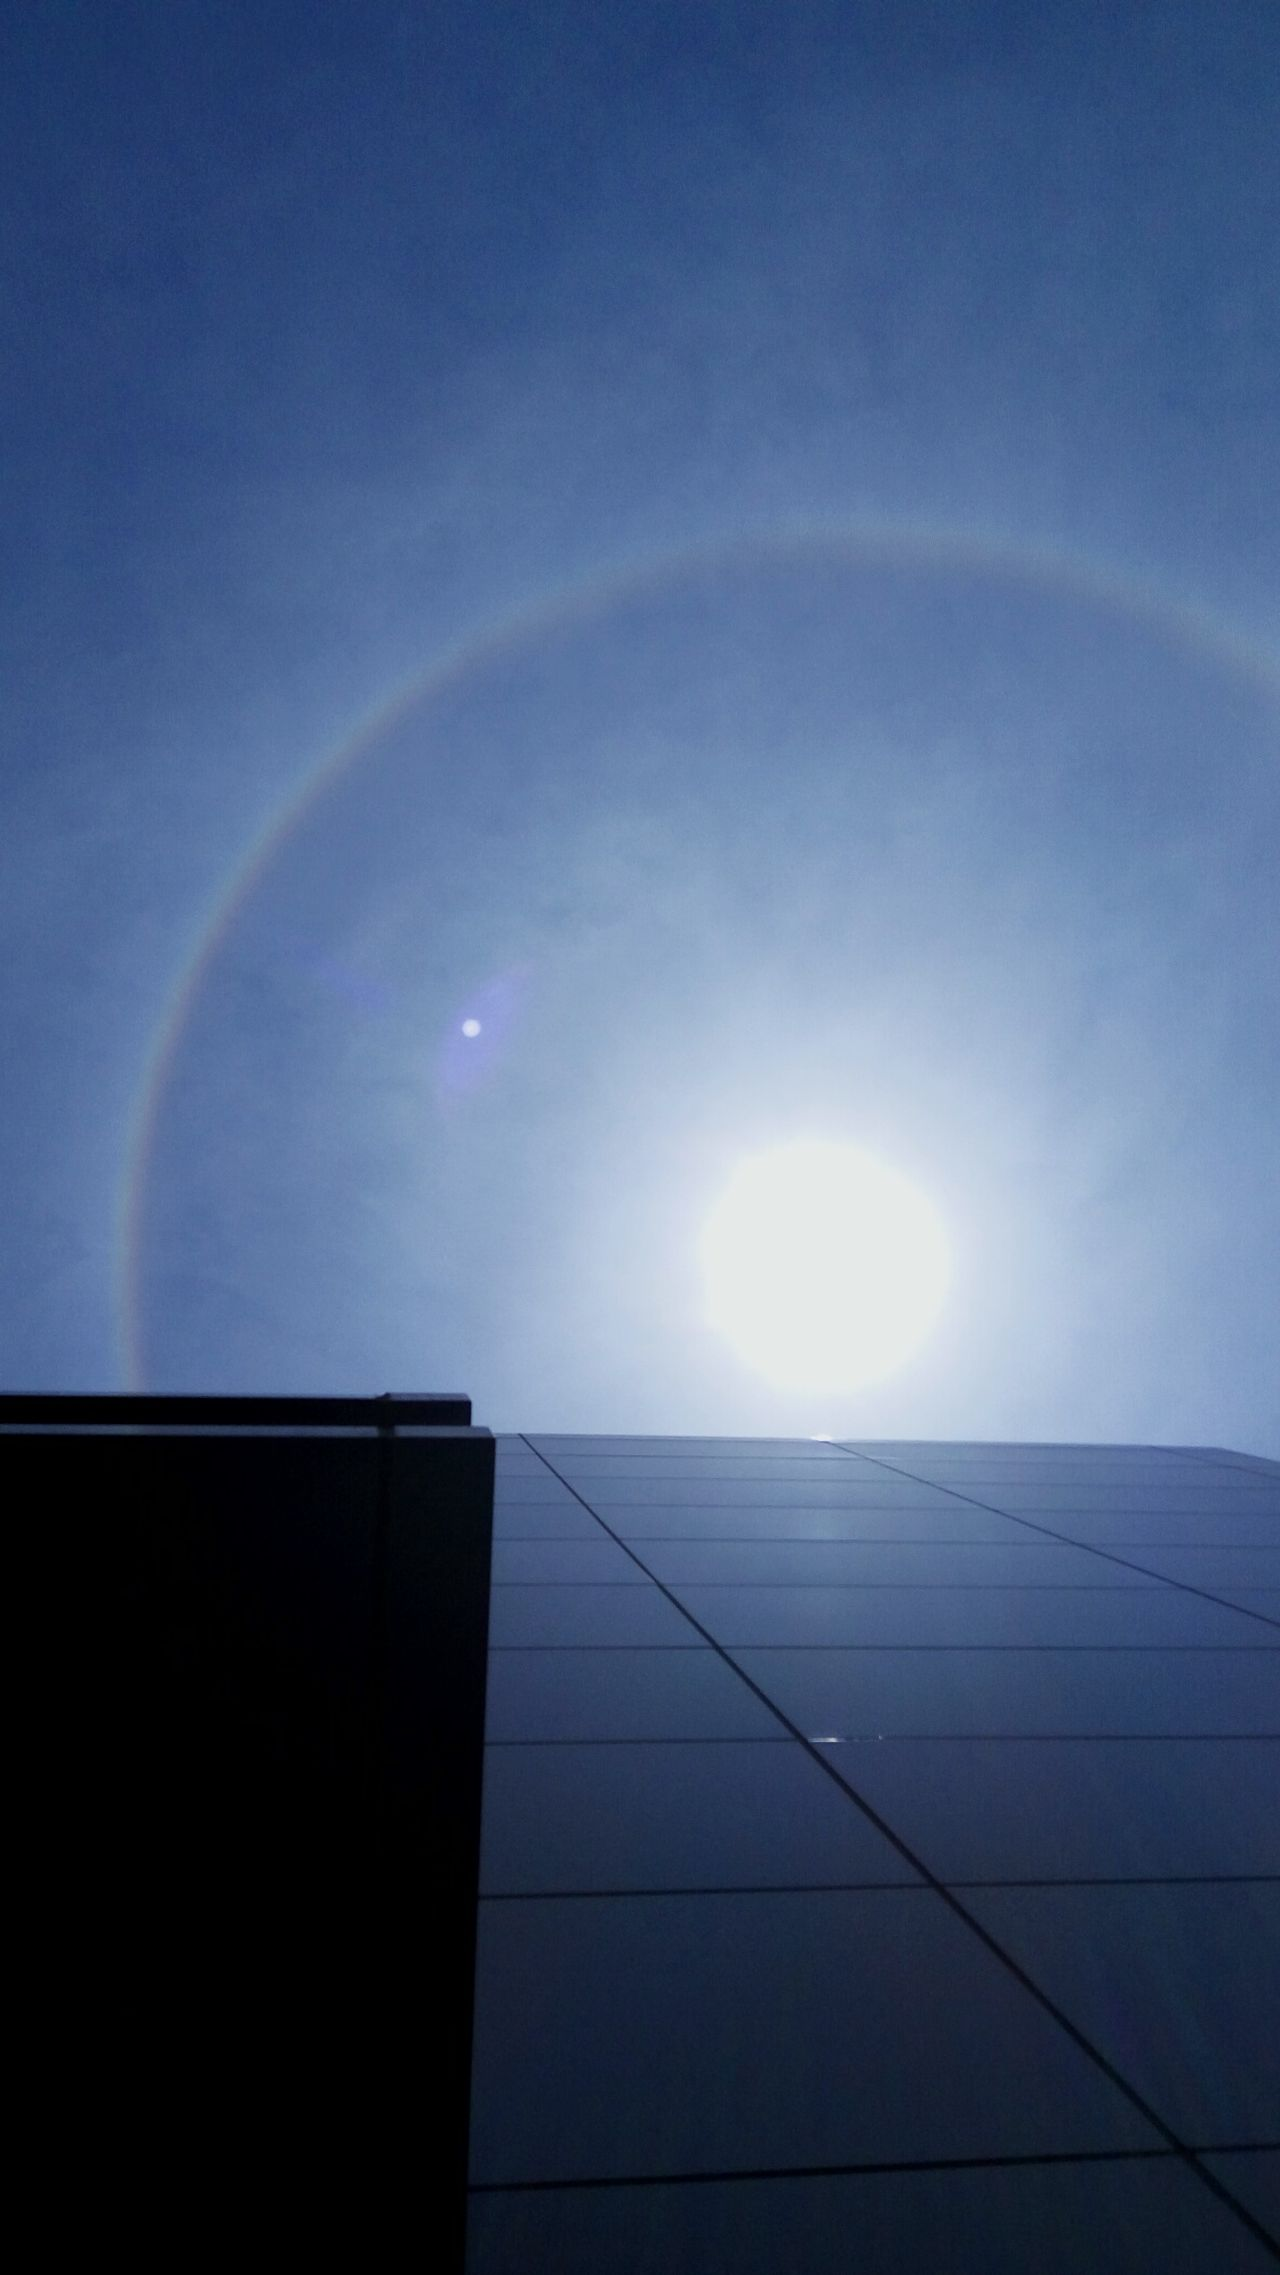 This is Halo Phenomenon that happened today in my workplace. I notice it once I saw a few person took some photos and video of the Sun's 'son' . The son appearance is due to the crystallization occurred at the troposphere and act as the mirror, reflects the Sun image.